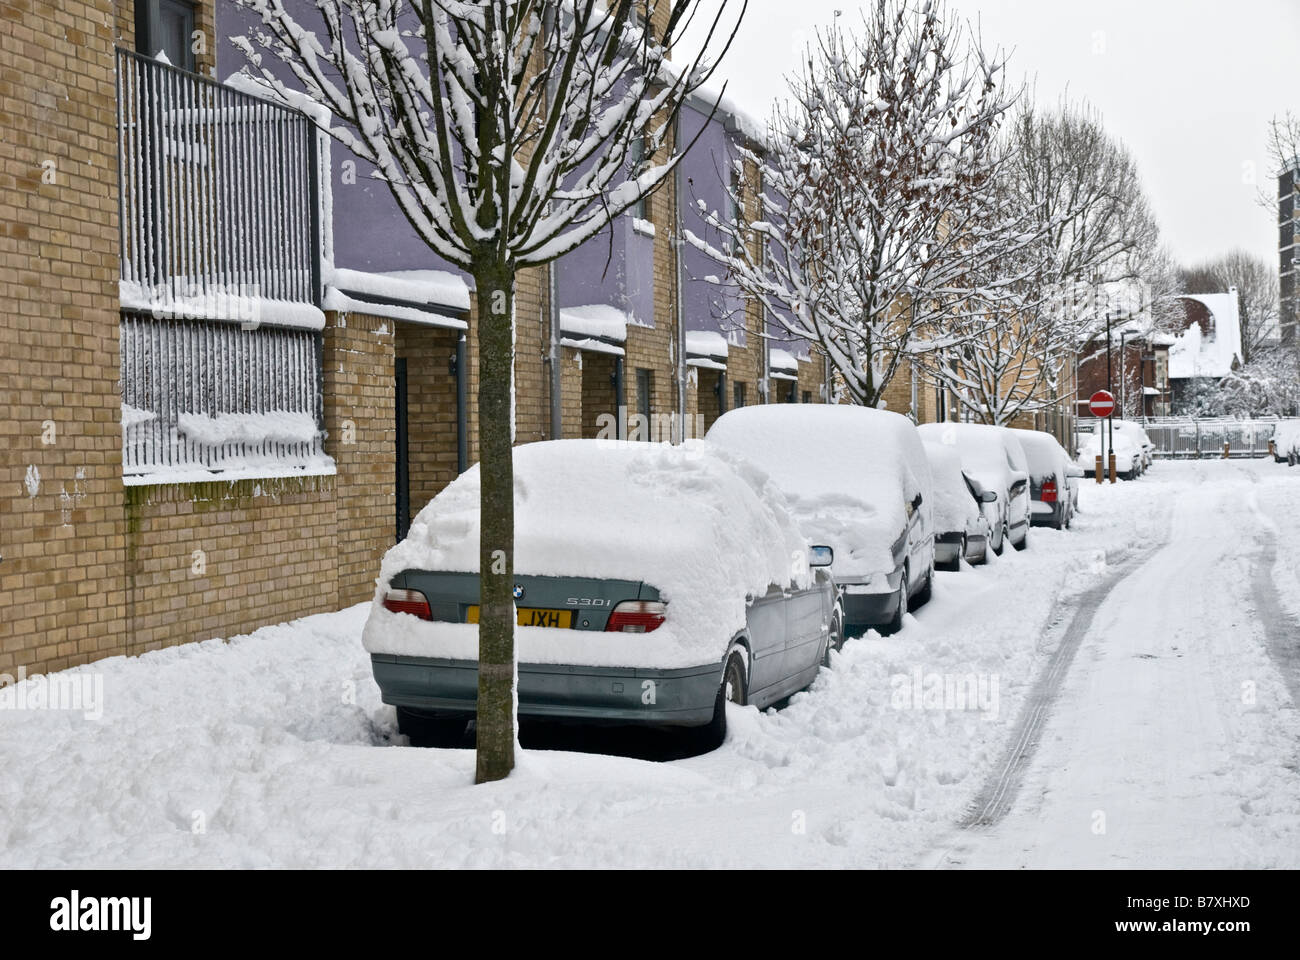 AFTER THE HEAVY SNOW FALL IN LONDON LOCAL SEENERY - Stock Image